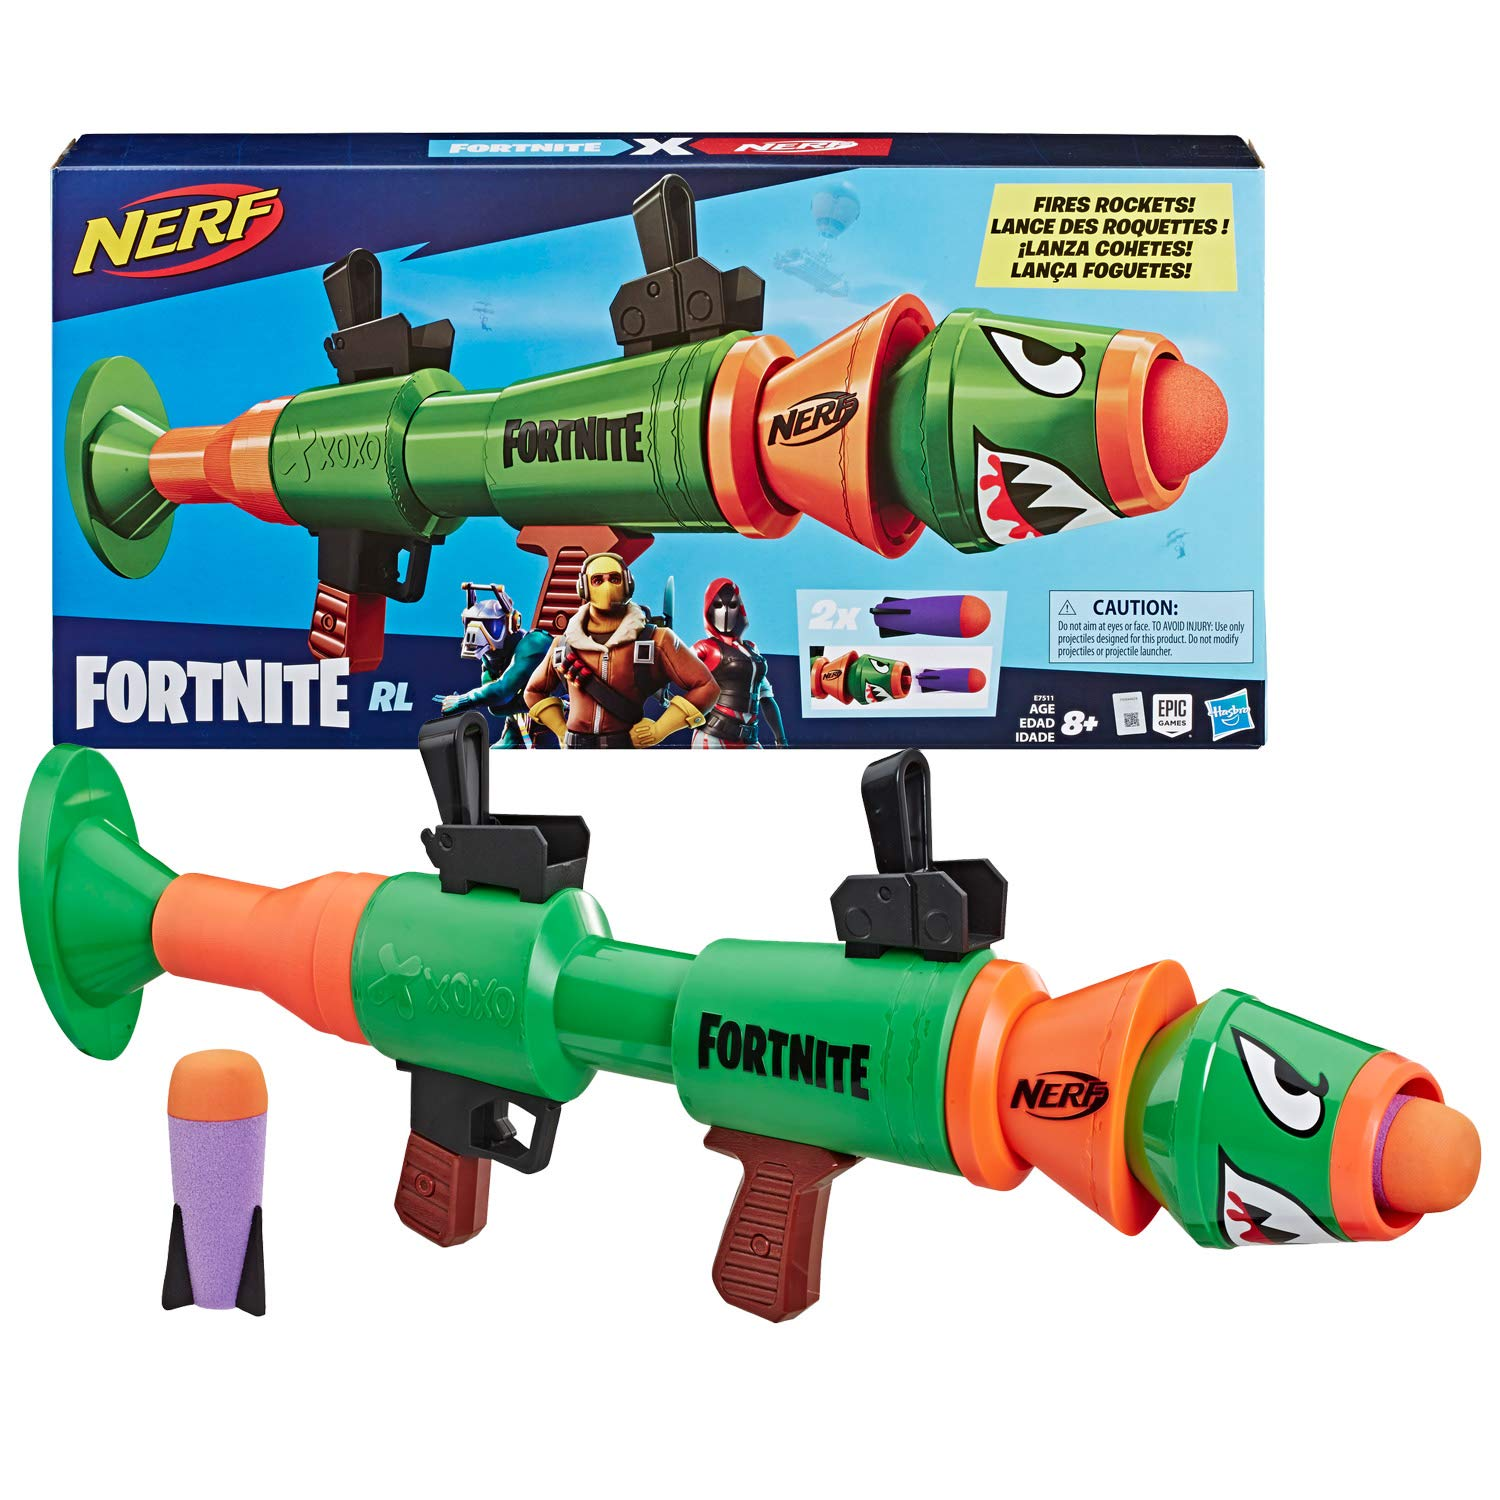 NERF Fortnite Rl Blaster -- Fires Foam Rockets -- Includes 2 Official Fortnite Rockets -- for Youth, Teens, Adults by NERF